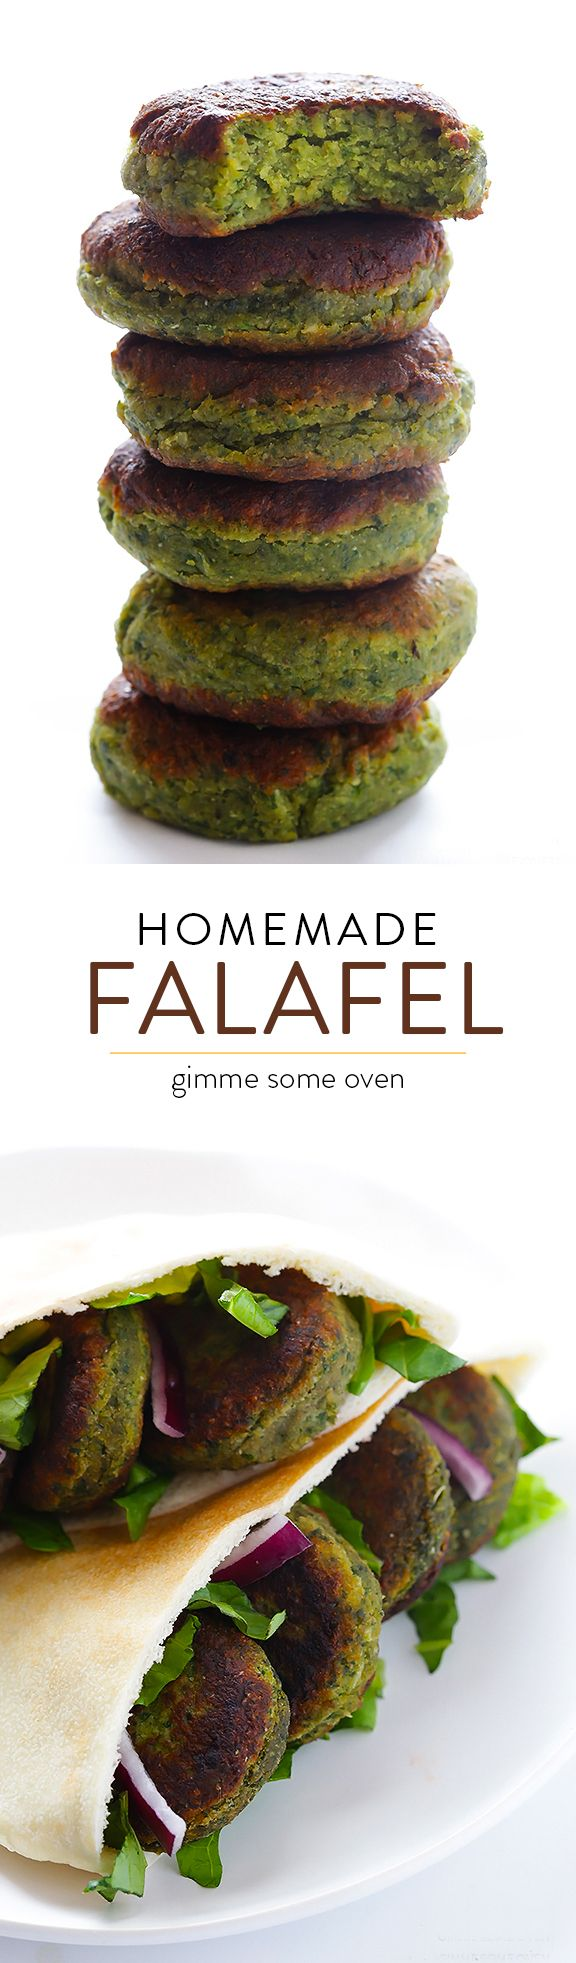 This falafel recipe is full of fresh ingredients, easy to make, and irresistibly good! | gimmesomeoven.com #ahealthyfoodie